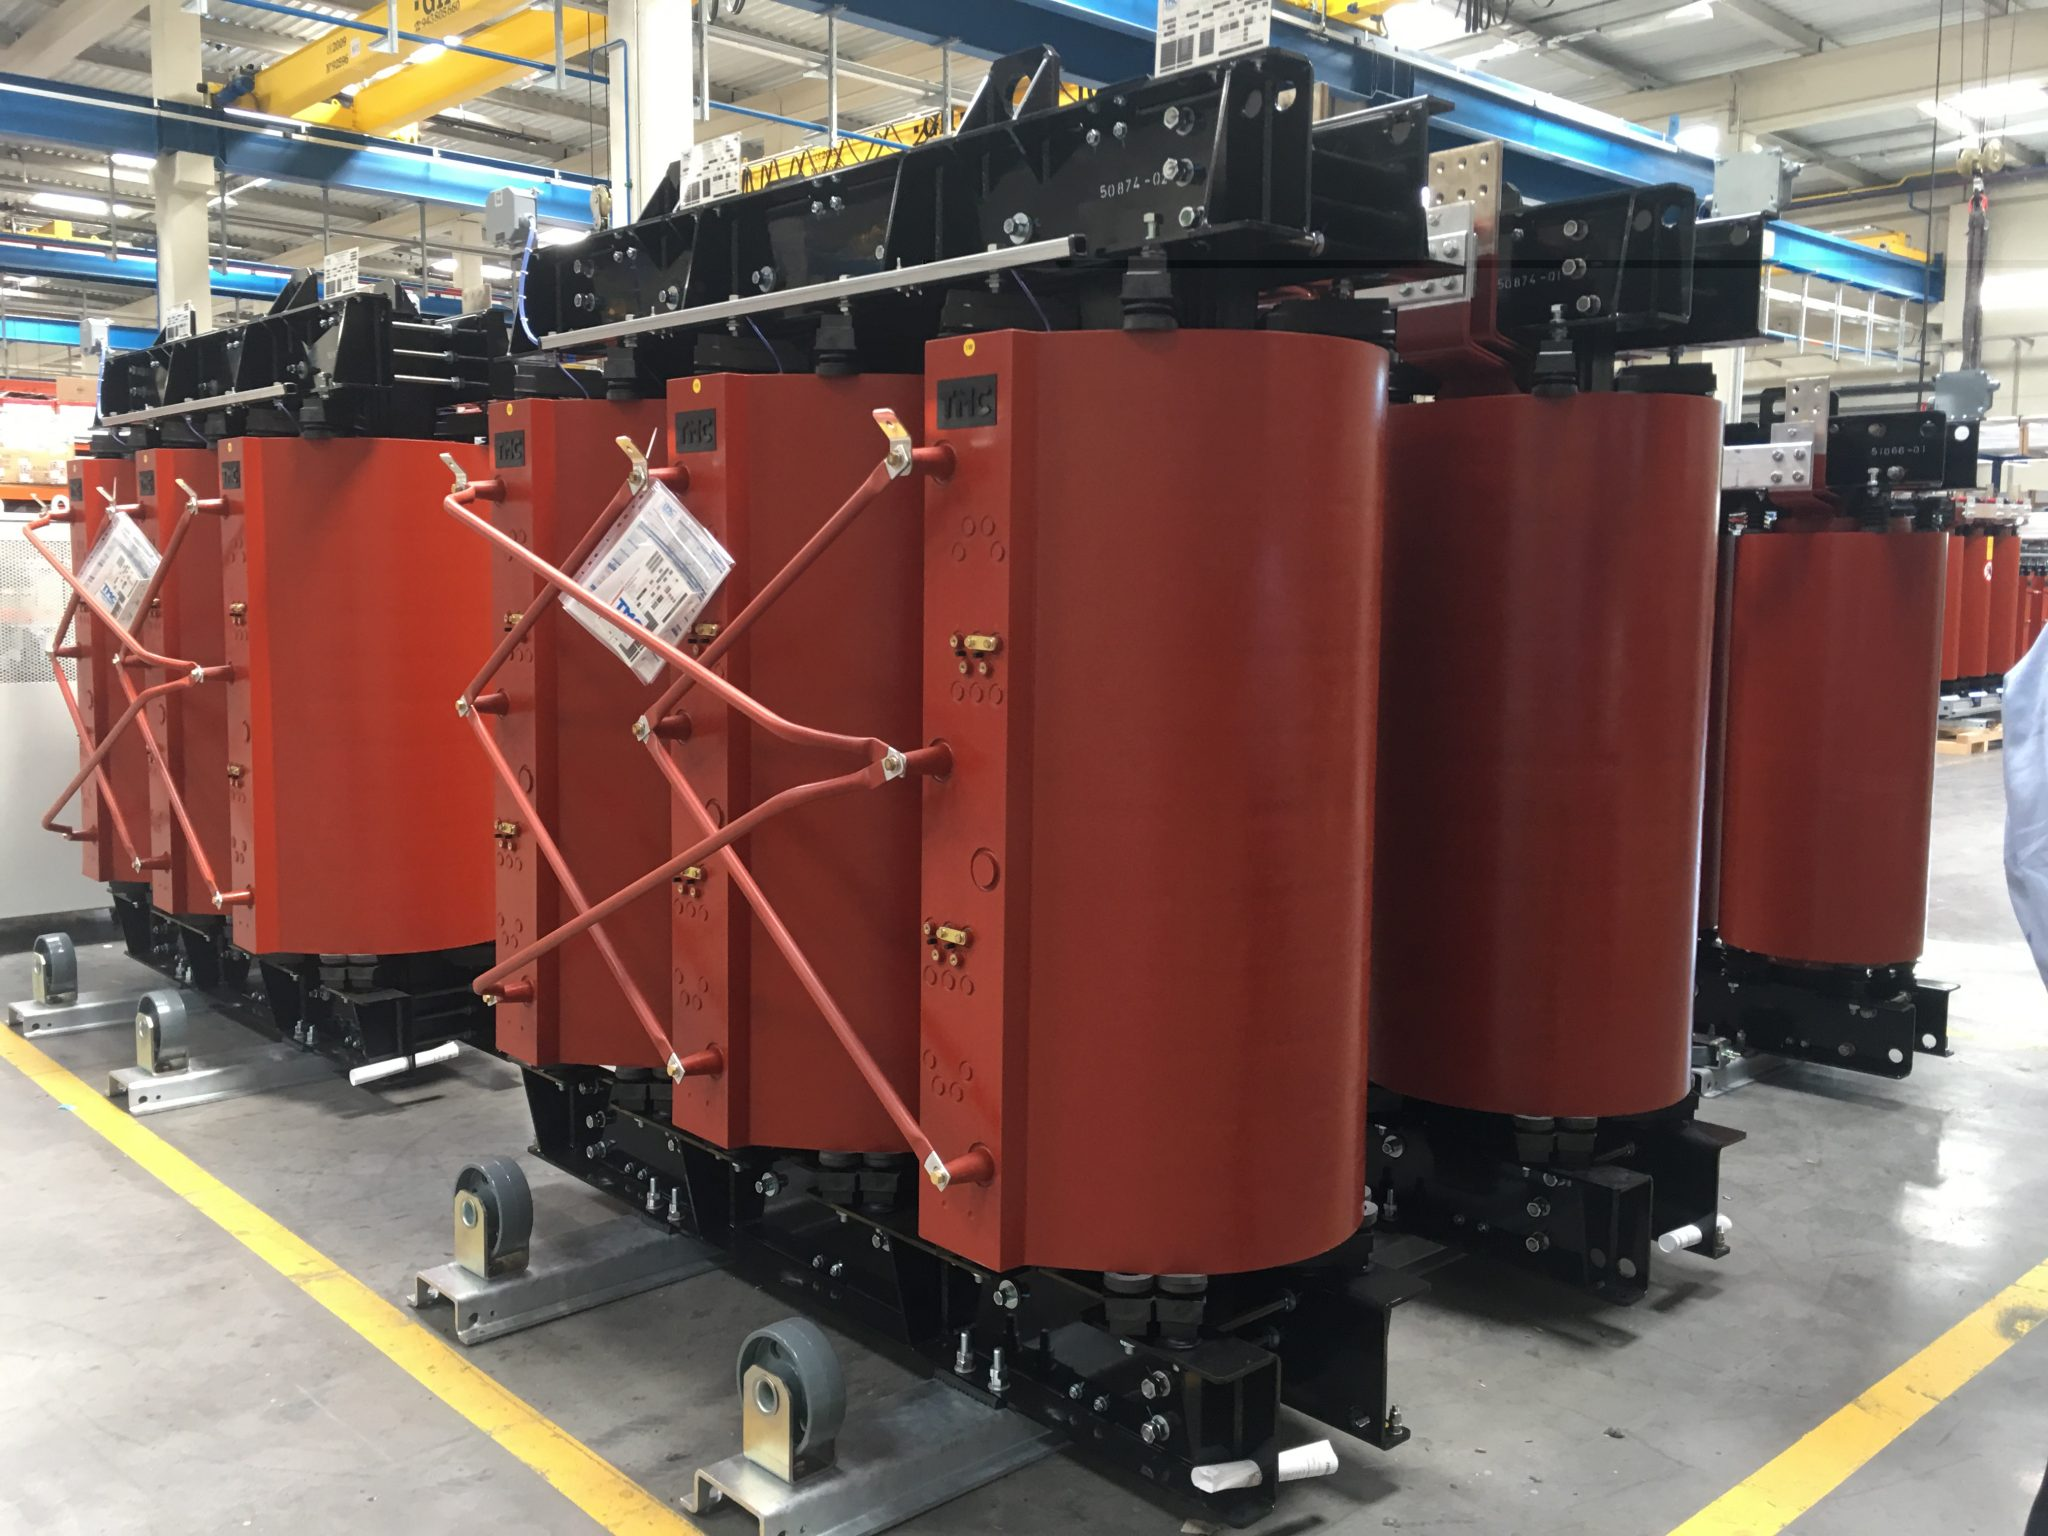 Dry Type Transformers Surplec Drytype Transformer Testing Open Electrical Inventory